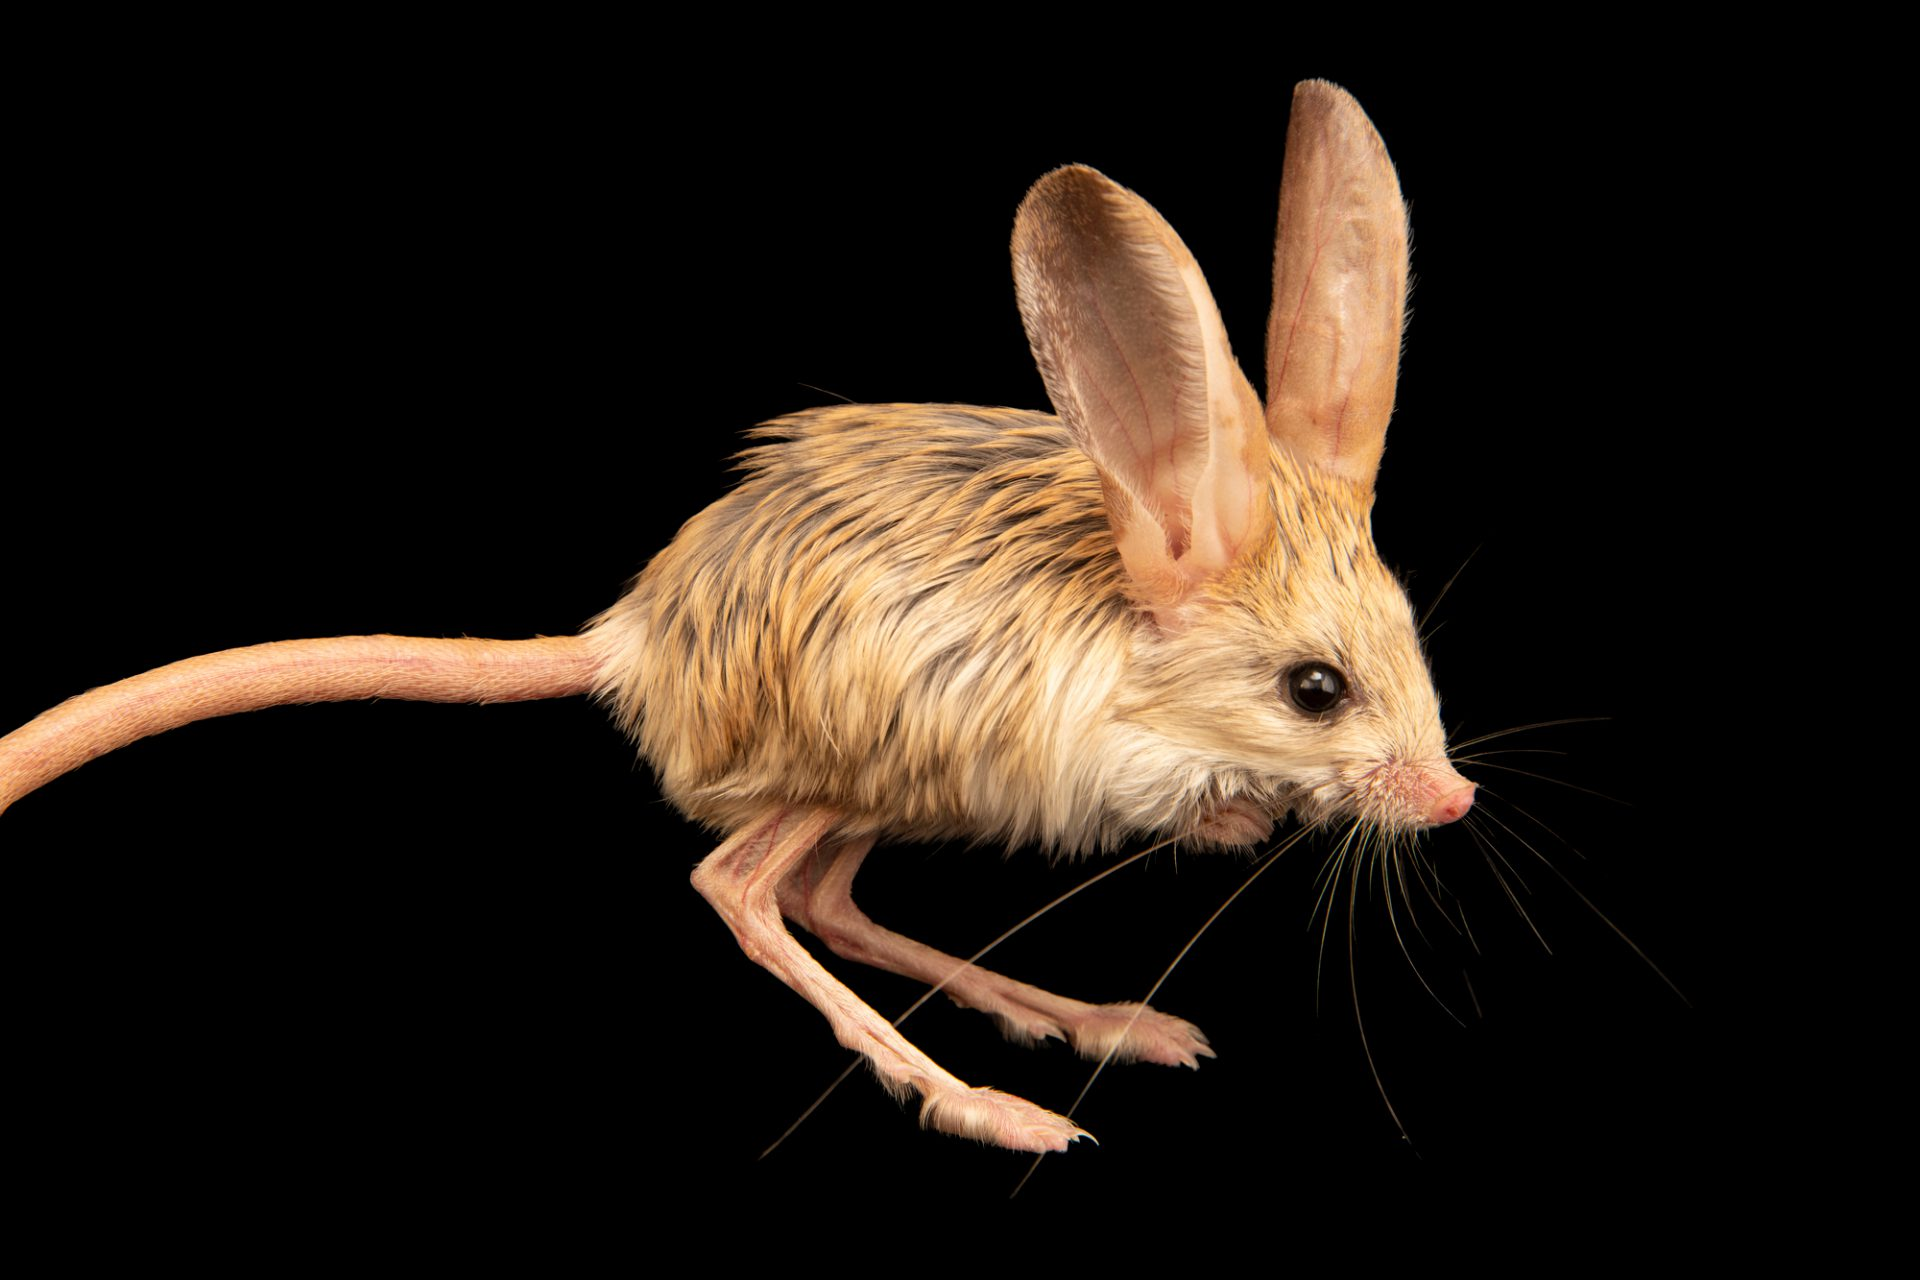 Photo: Long-eared jerboa (Euchoreutes naso) at the Moscow Zoo.